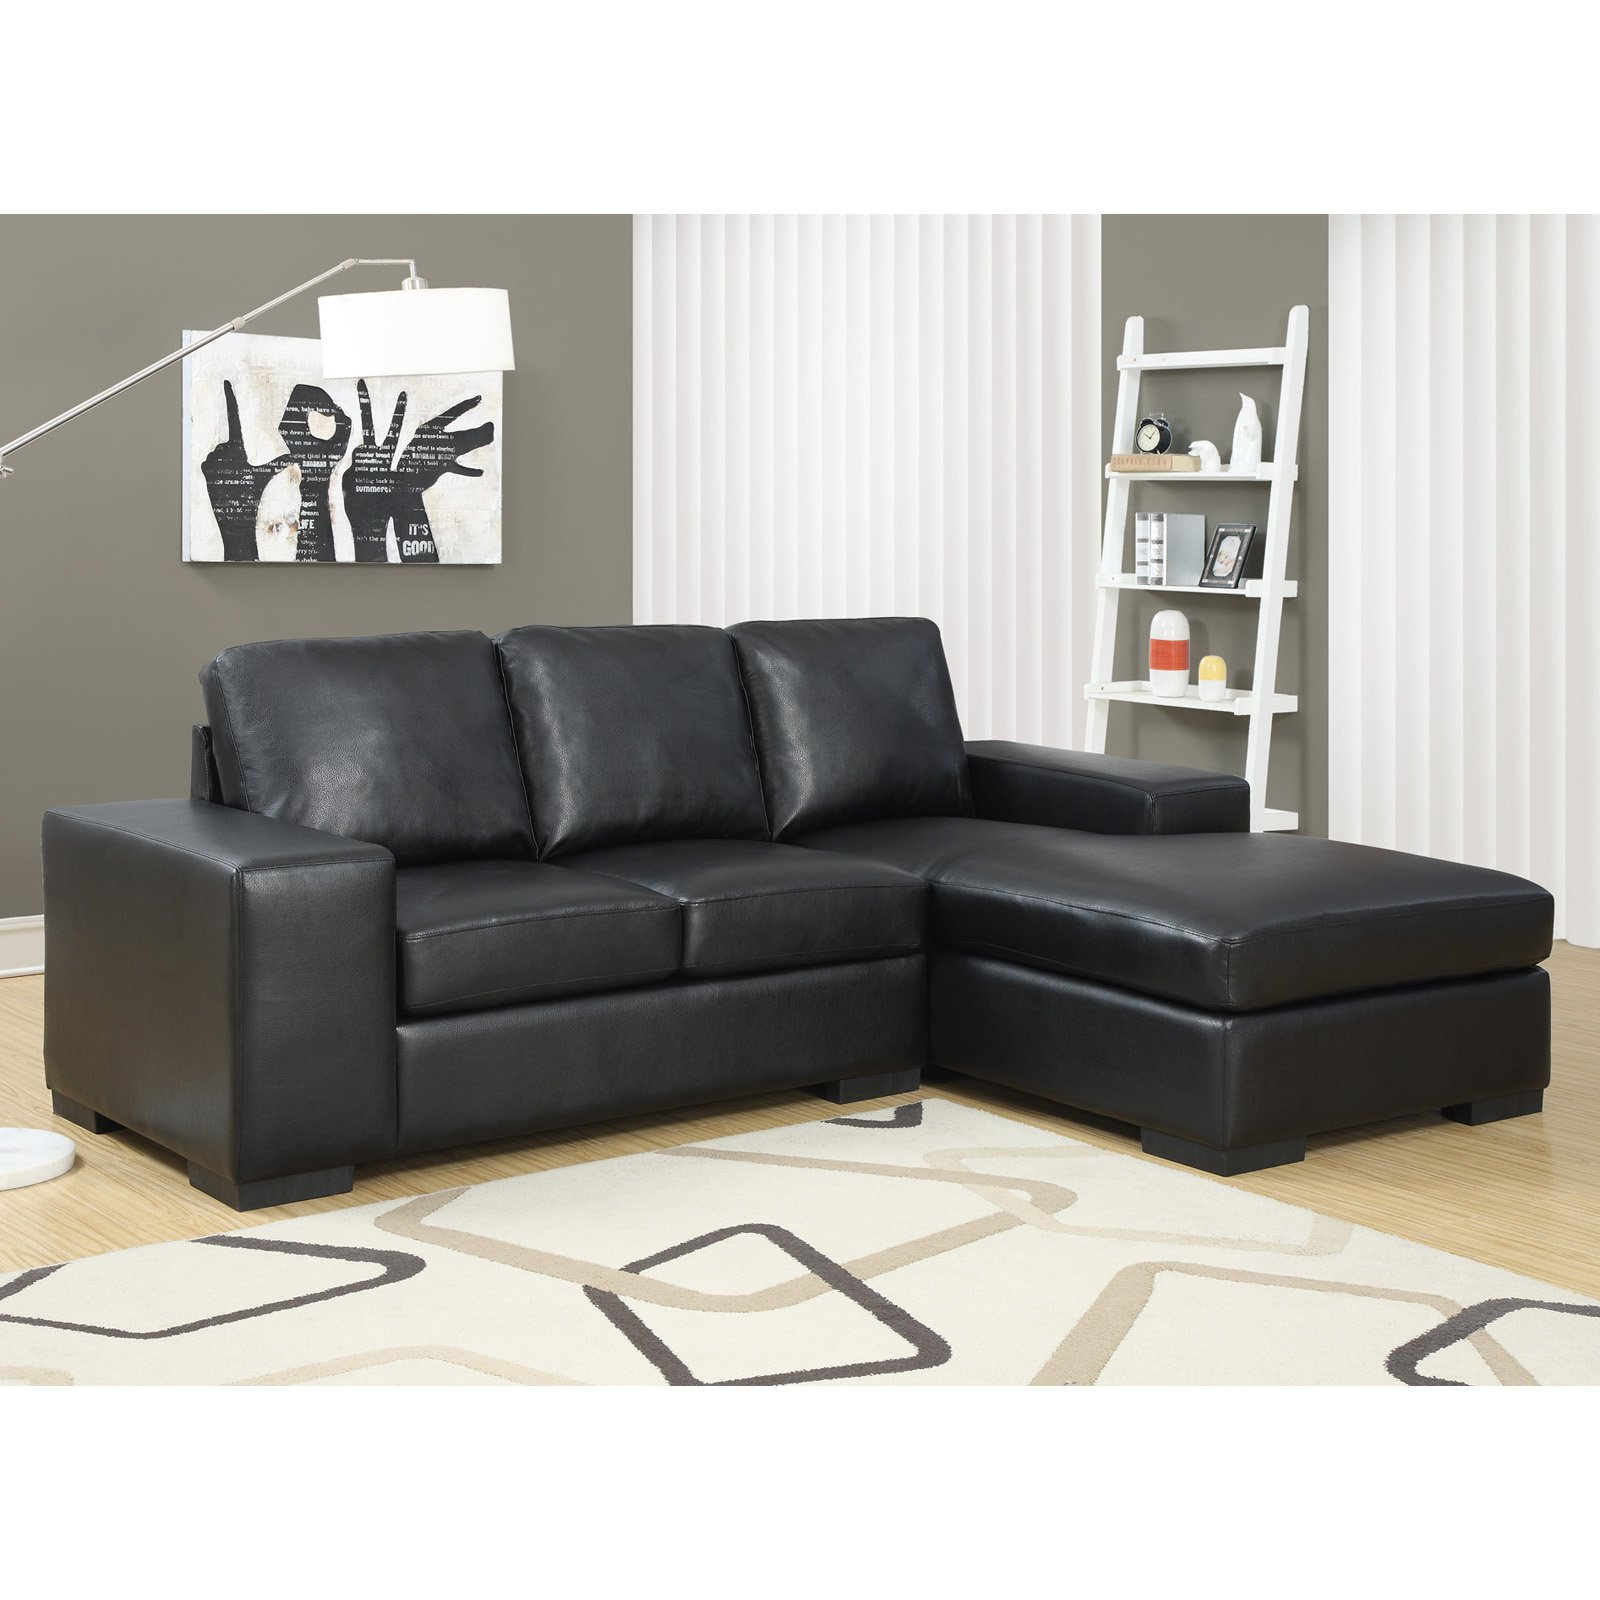 Monarch Specialties Sheffield Leather Sofa Lounger